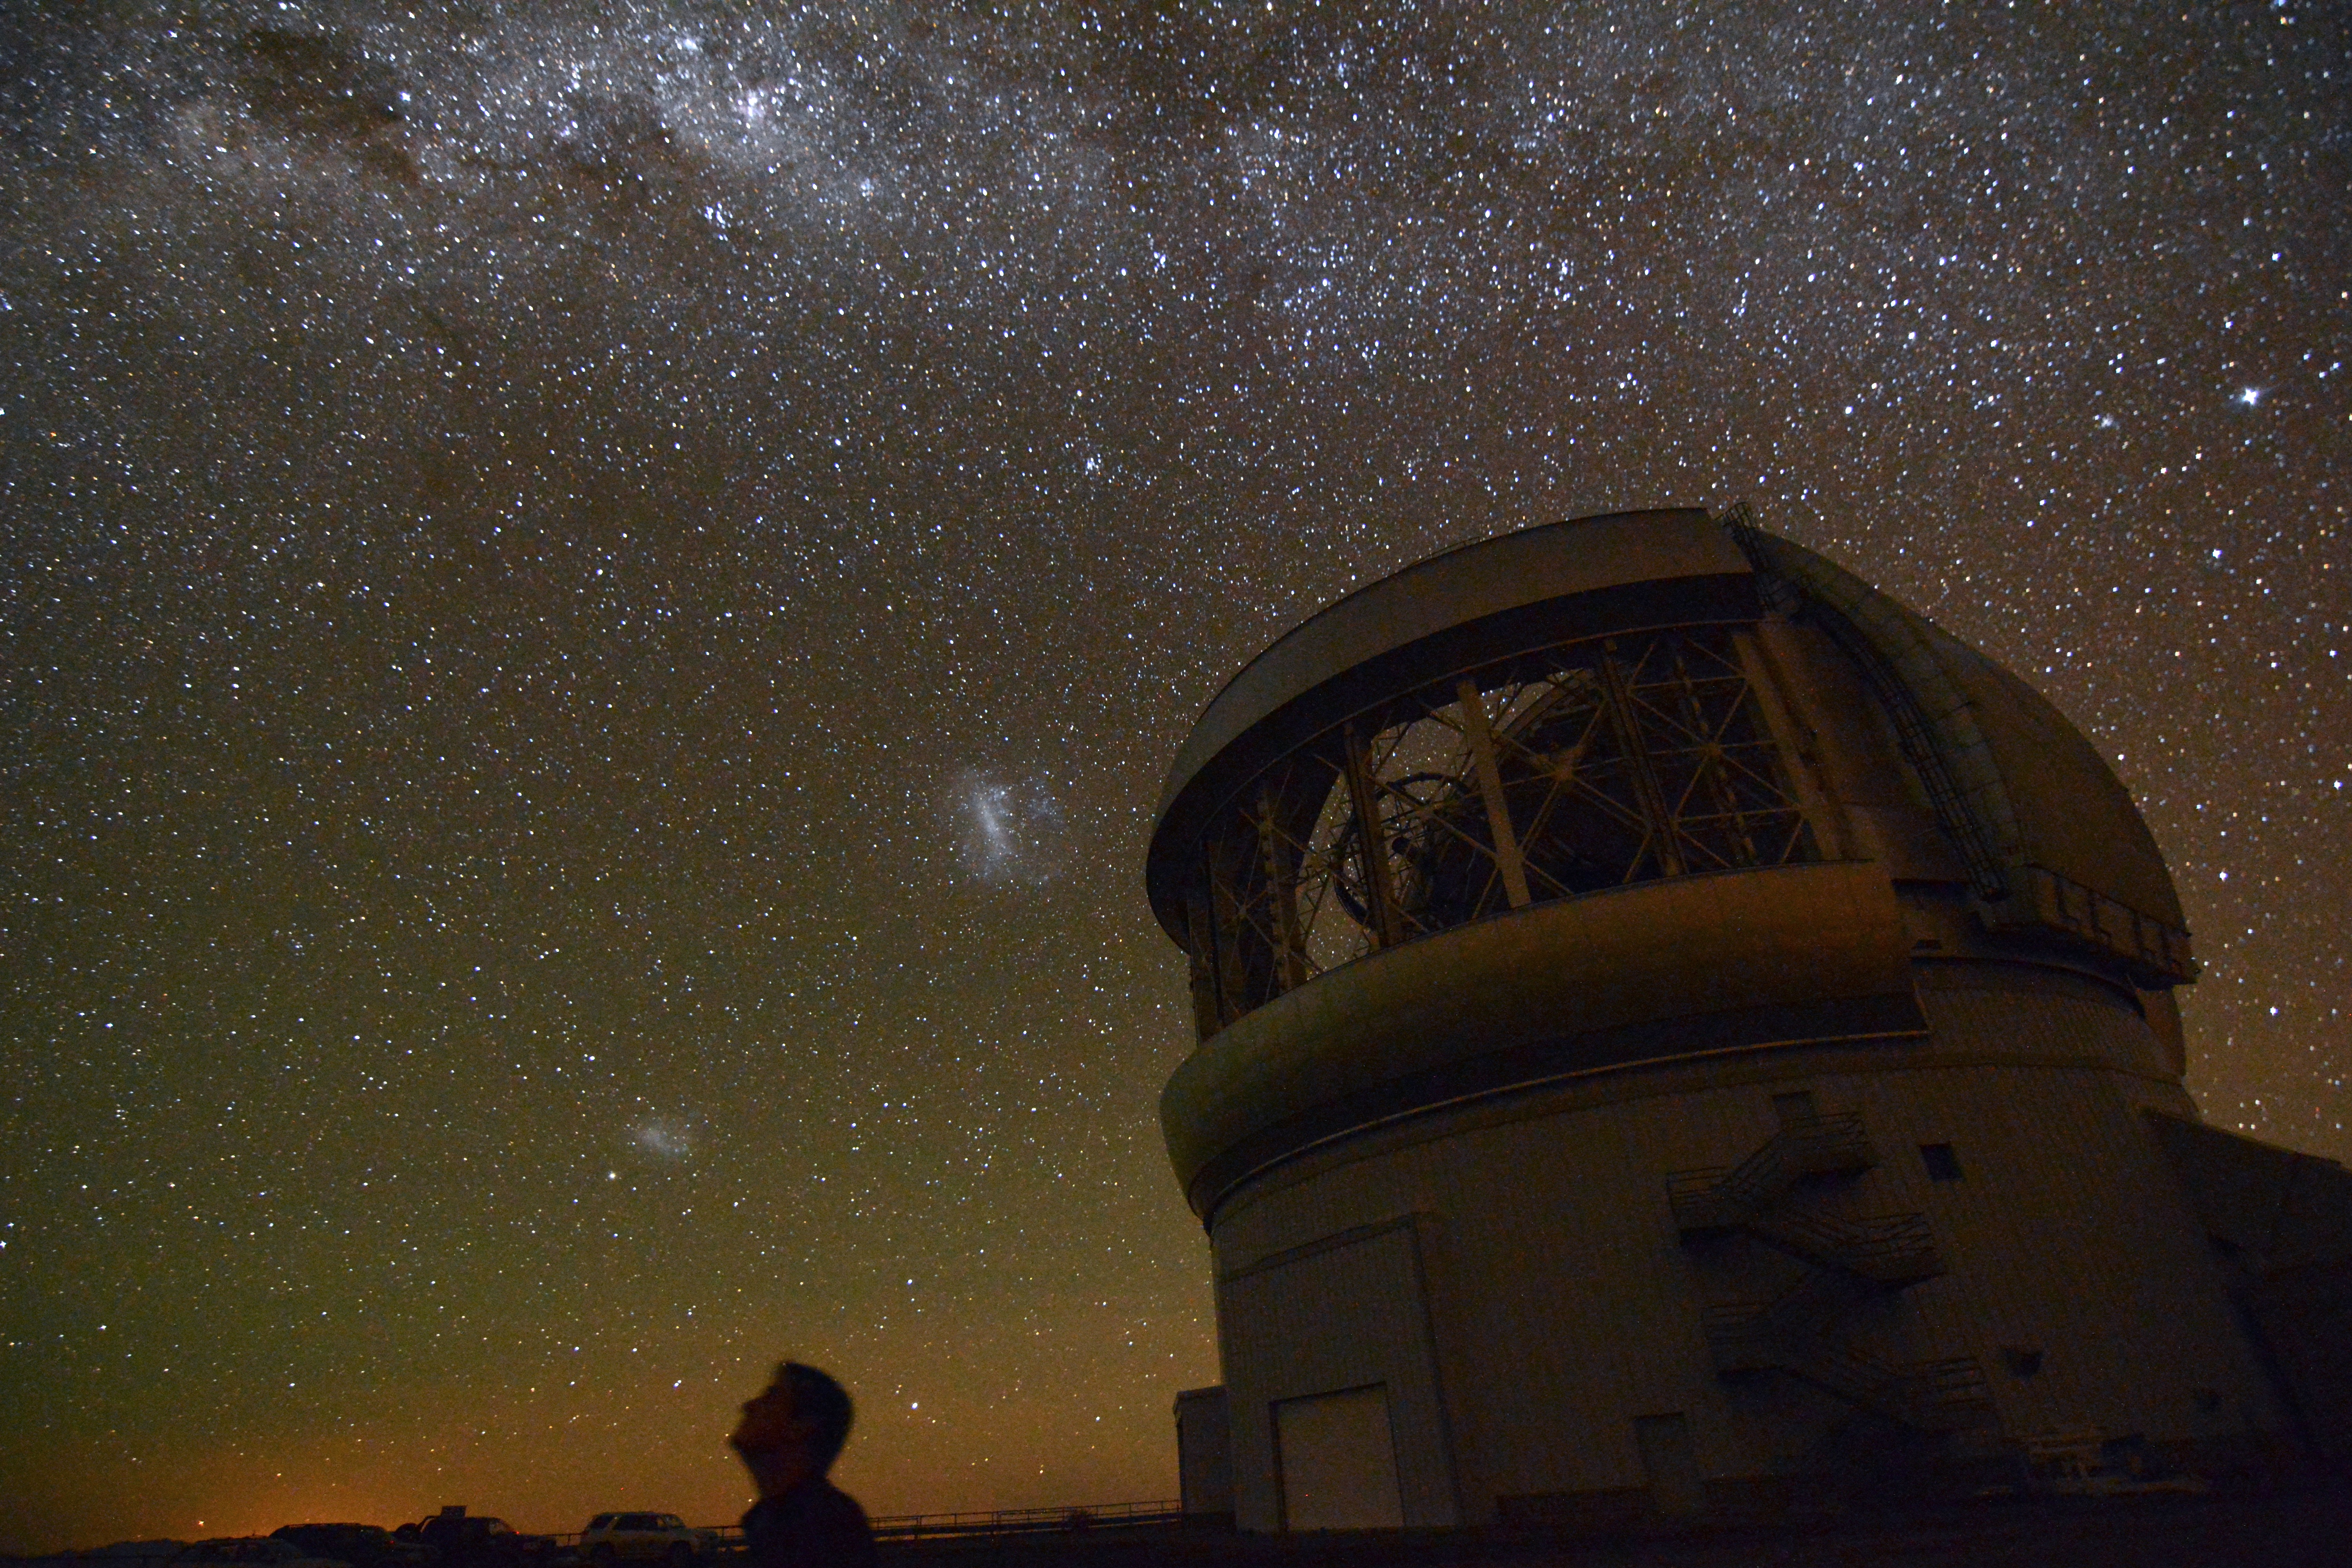 Gemini South telescope and the southern hemisphere sky (credit: Marshall Perrin).